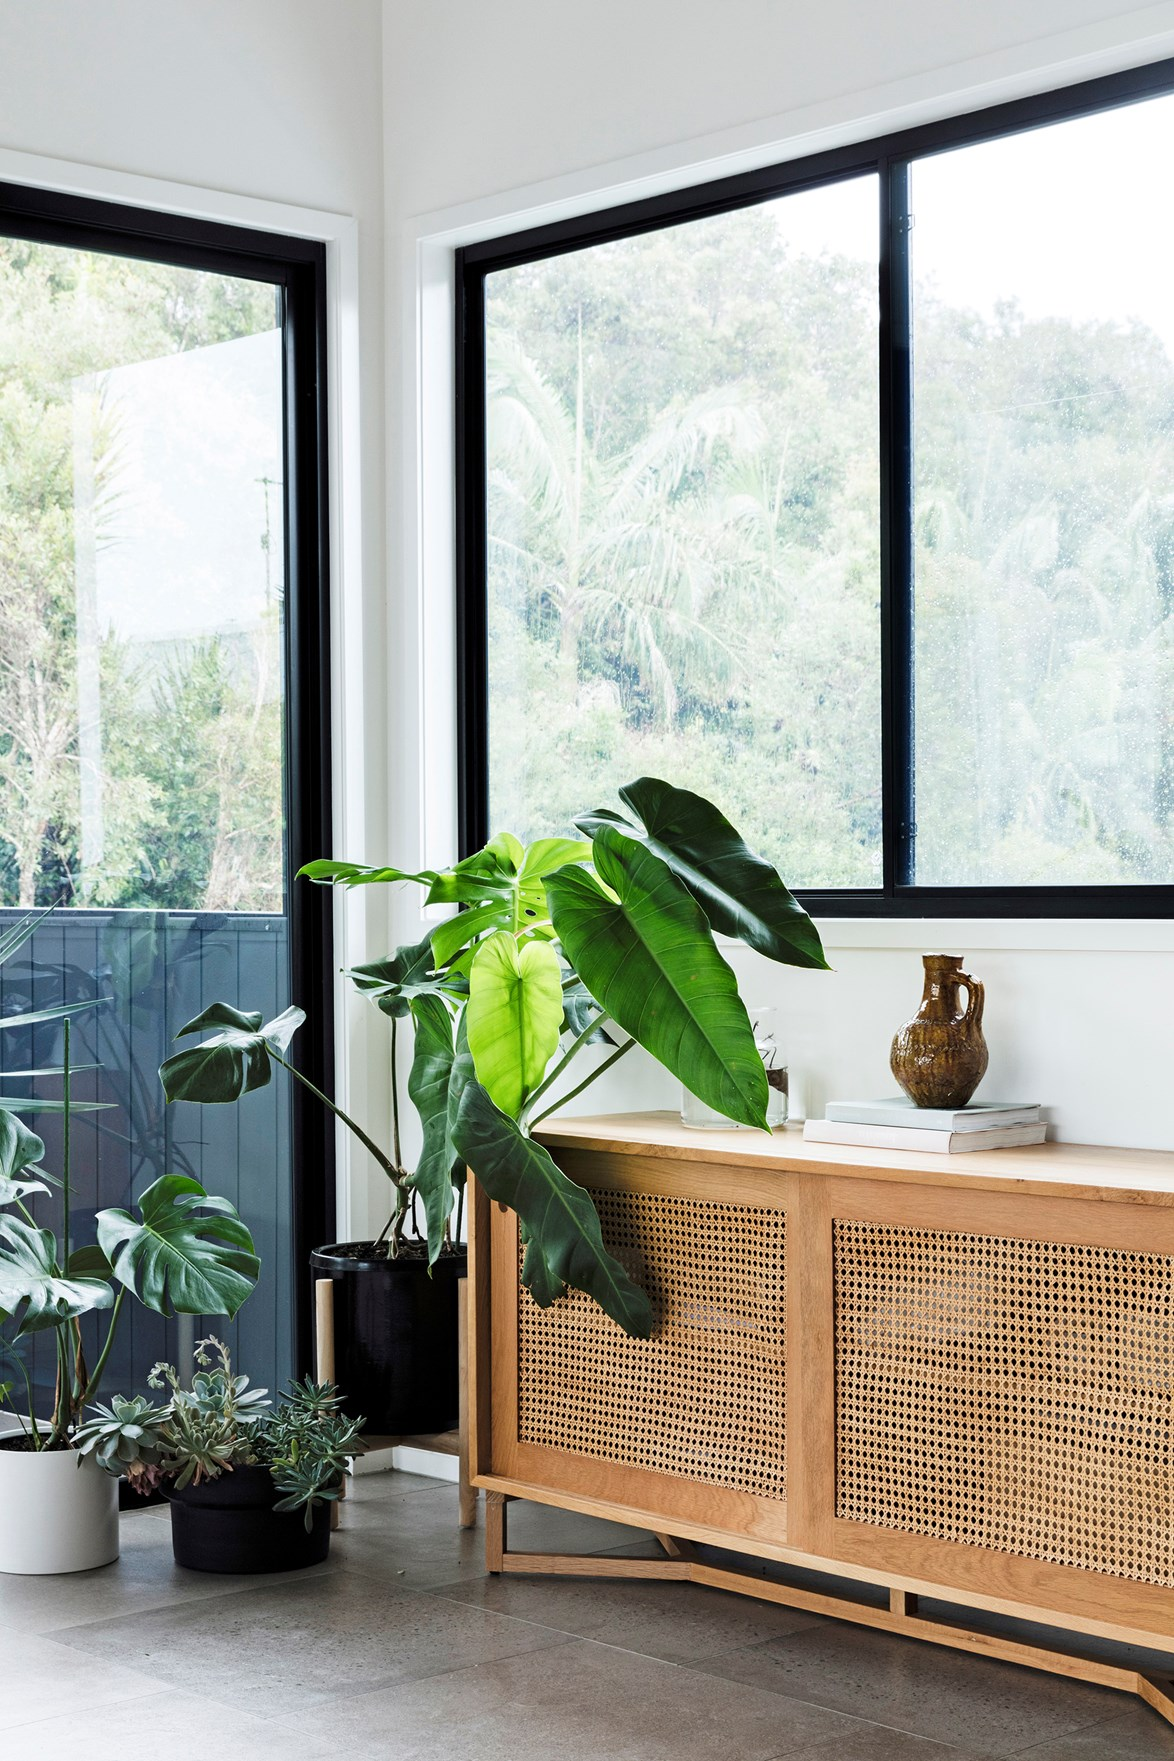 If you prefer to keep things minimal, indoor plants, handcrafted ceramics and a couple of books is all you need to style your sideboard.